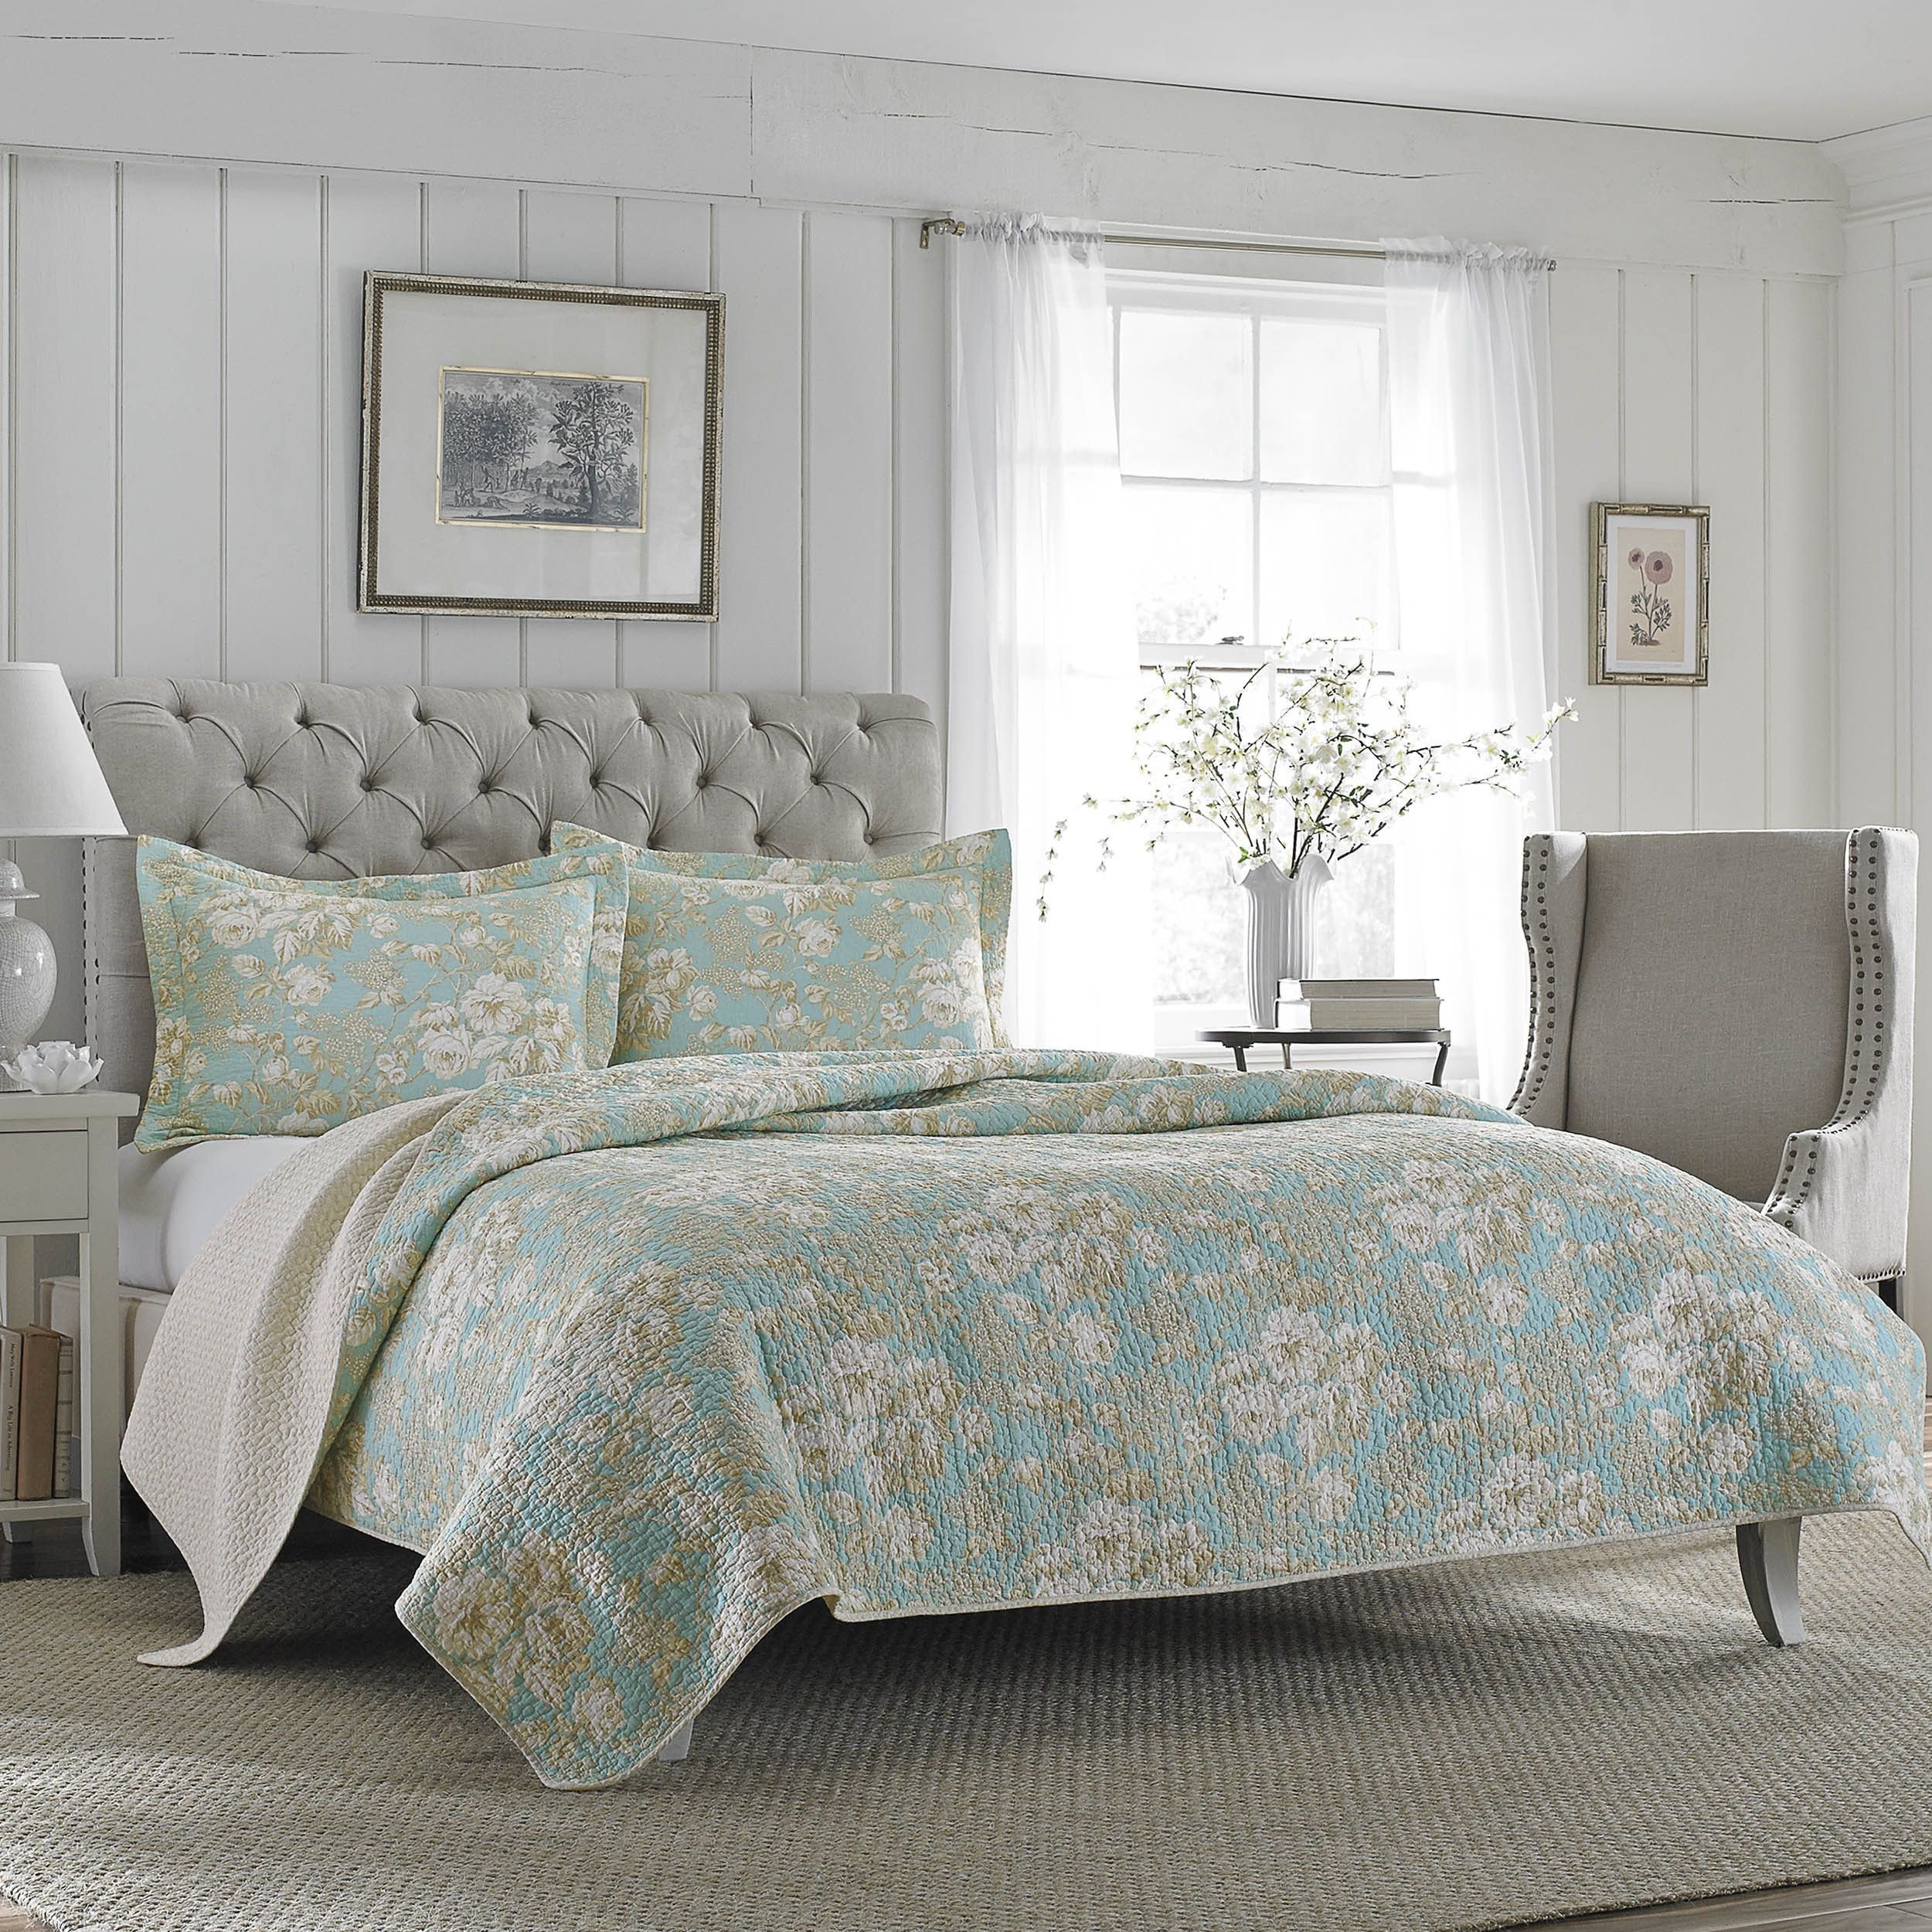 Laura ashley Bedroom Set Beautiful Laura ashley Brompton Serene Reversible Cotton Quilt Set